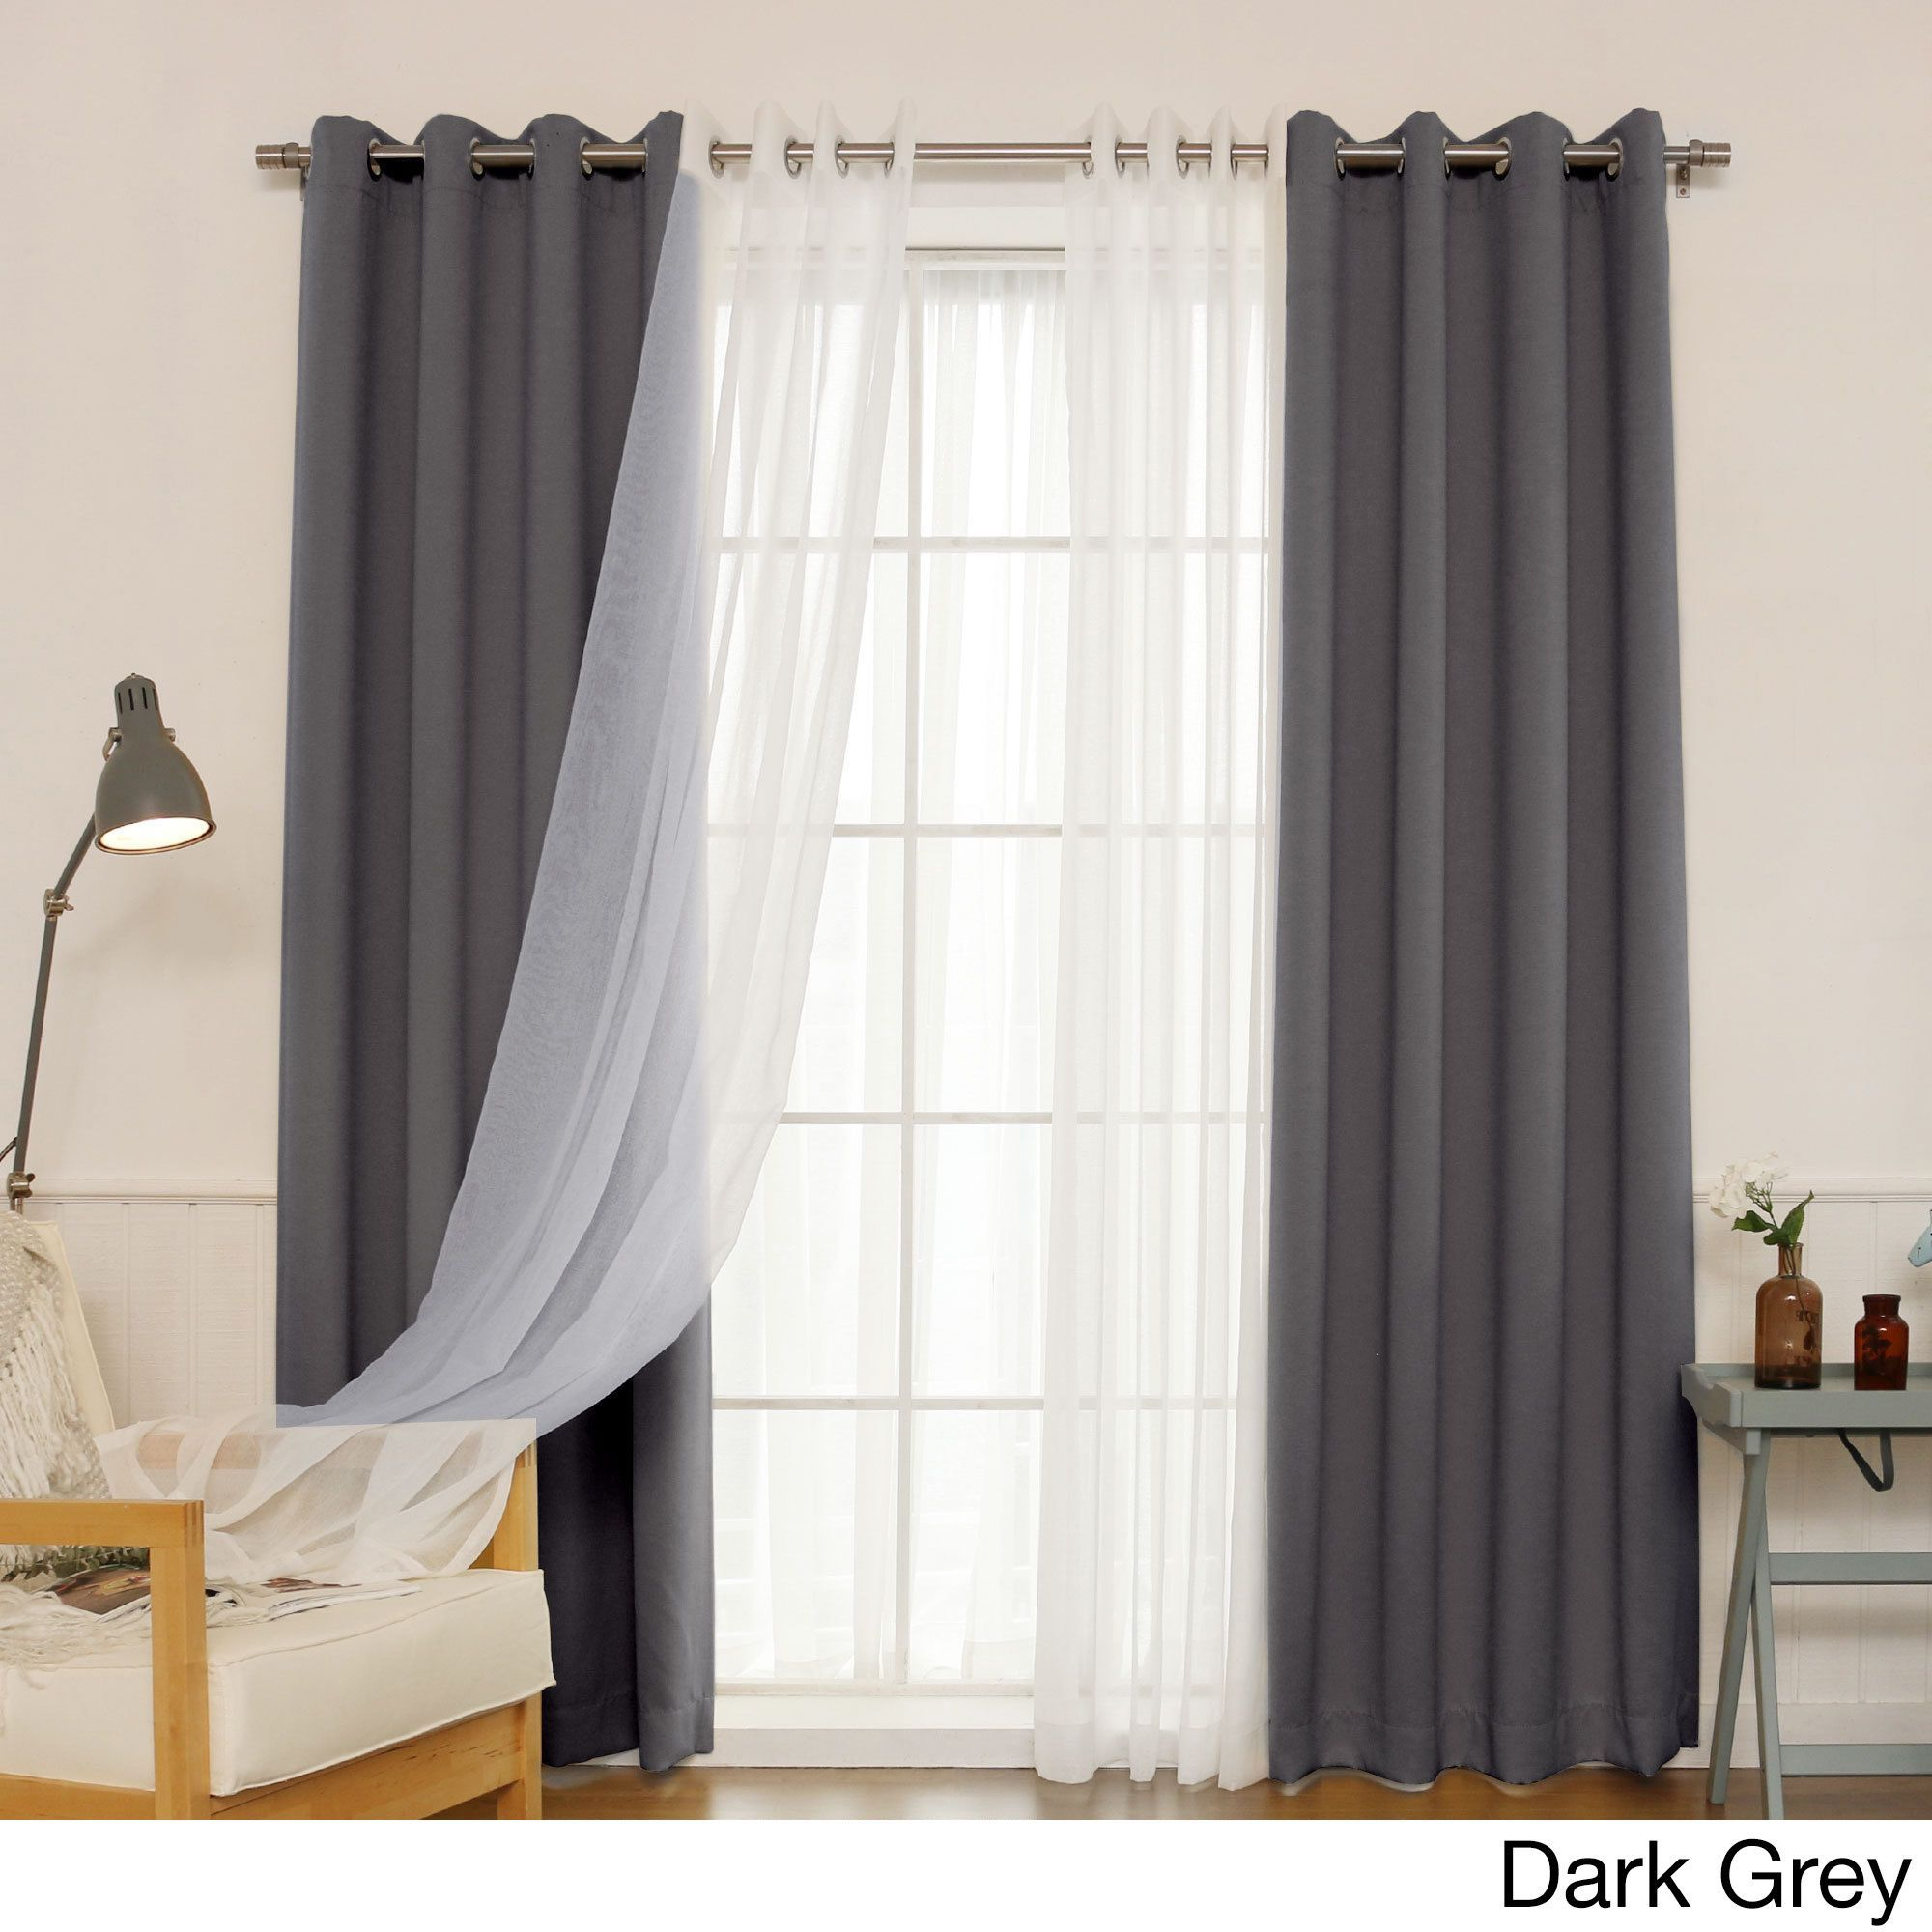 Aurora Home MIX Match Curtains Blackout And Muji Sheer Inch - Classic ball fringe curtains